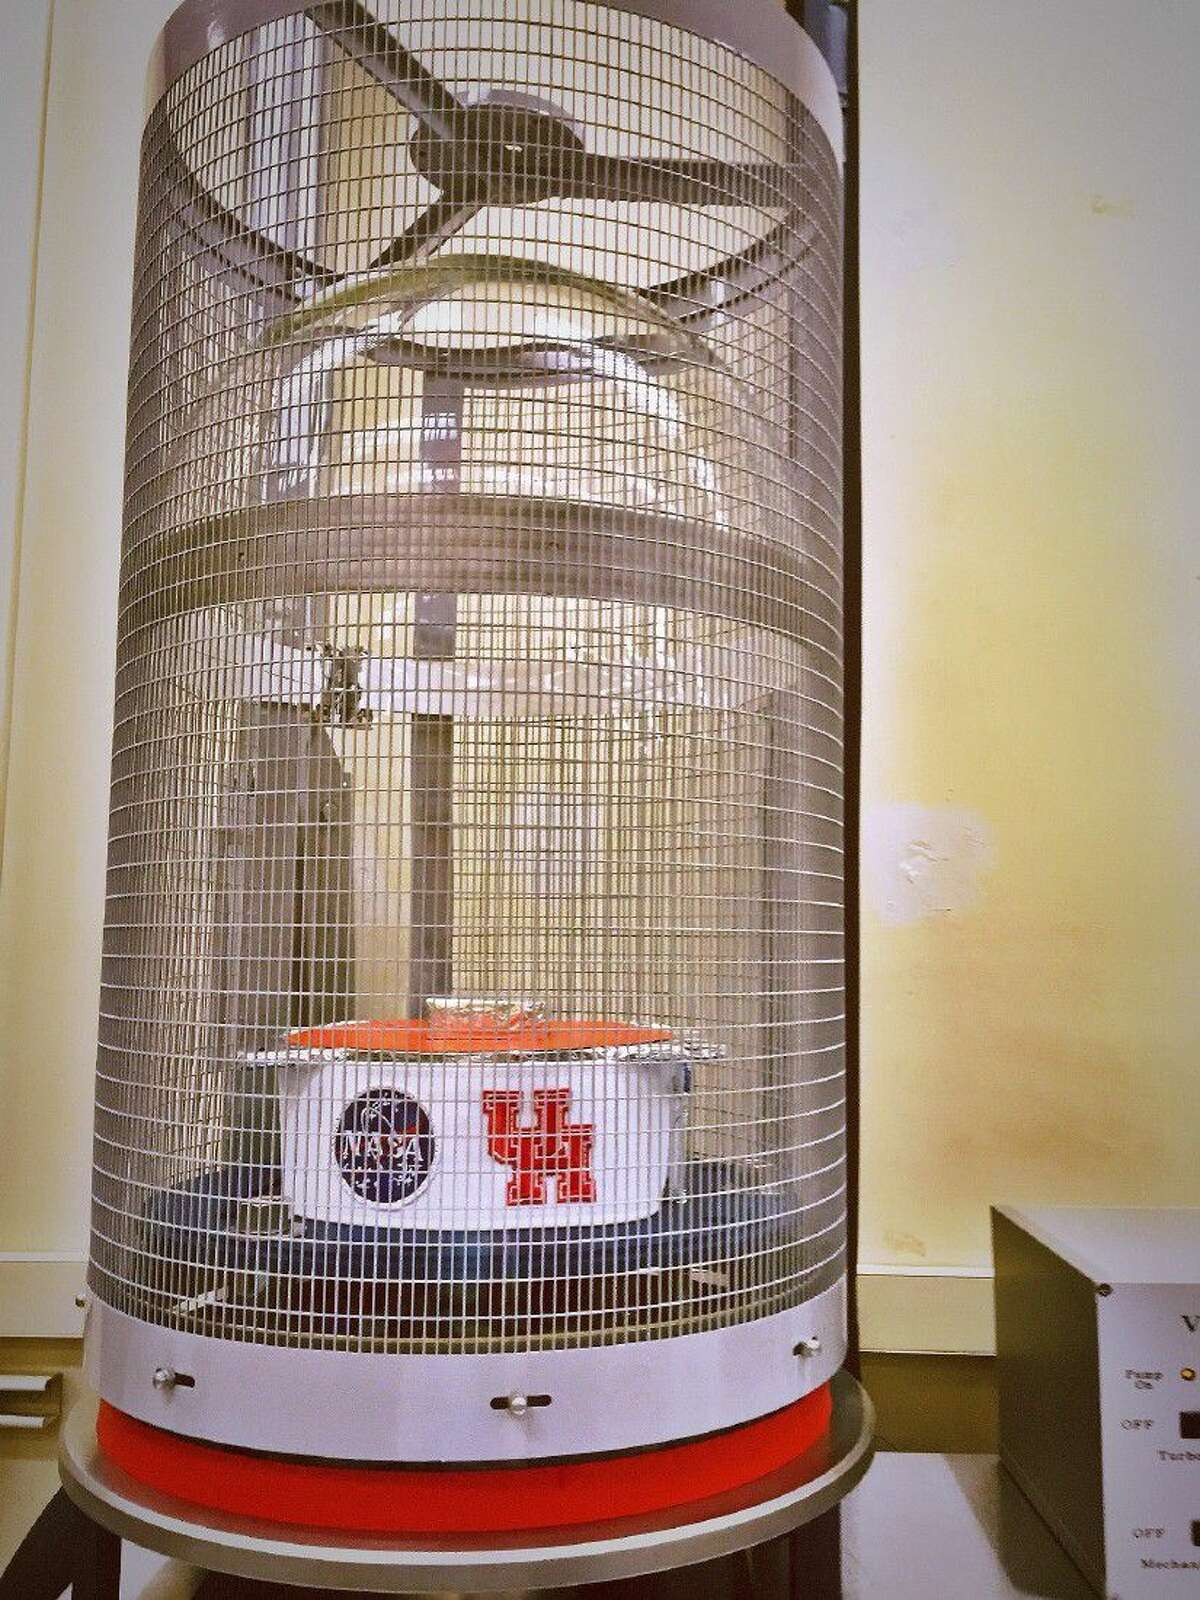 A group of University of Houston students has completed an ambitious senior project, refurbishing an out-of-date vacuum chamber at NASA's Johnson Space Center that now will be used to test components bound for the International Space Station and, potentially, Mars or other deep space destinations.